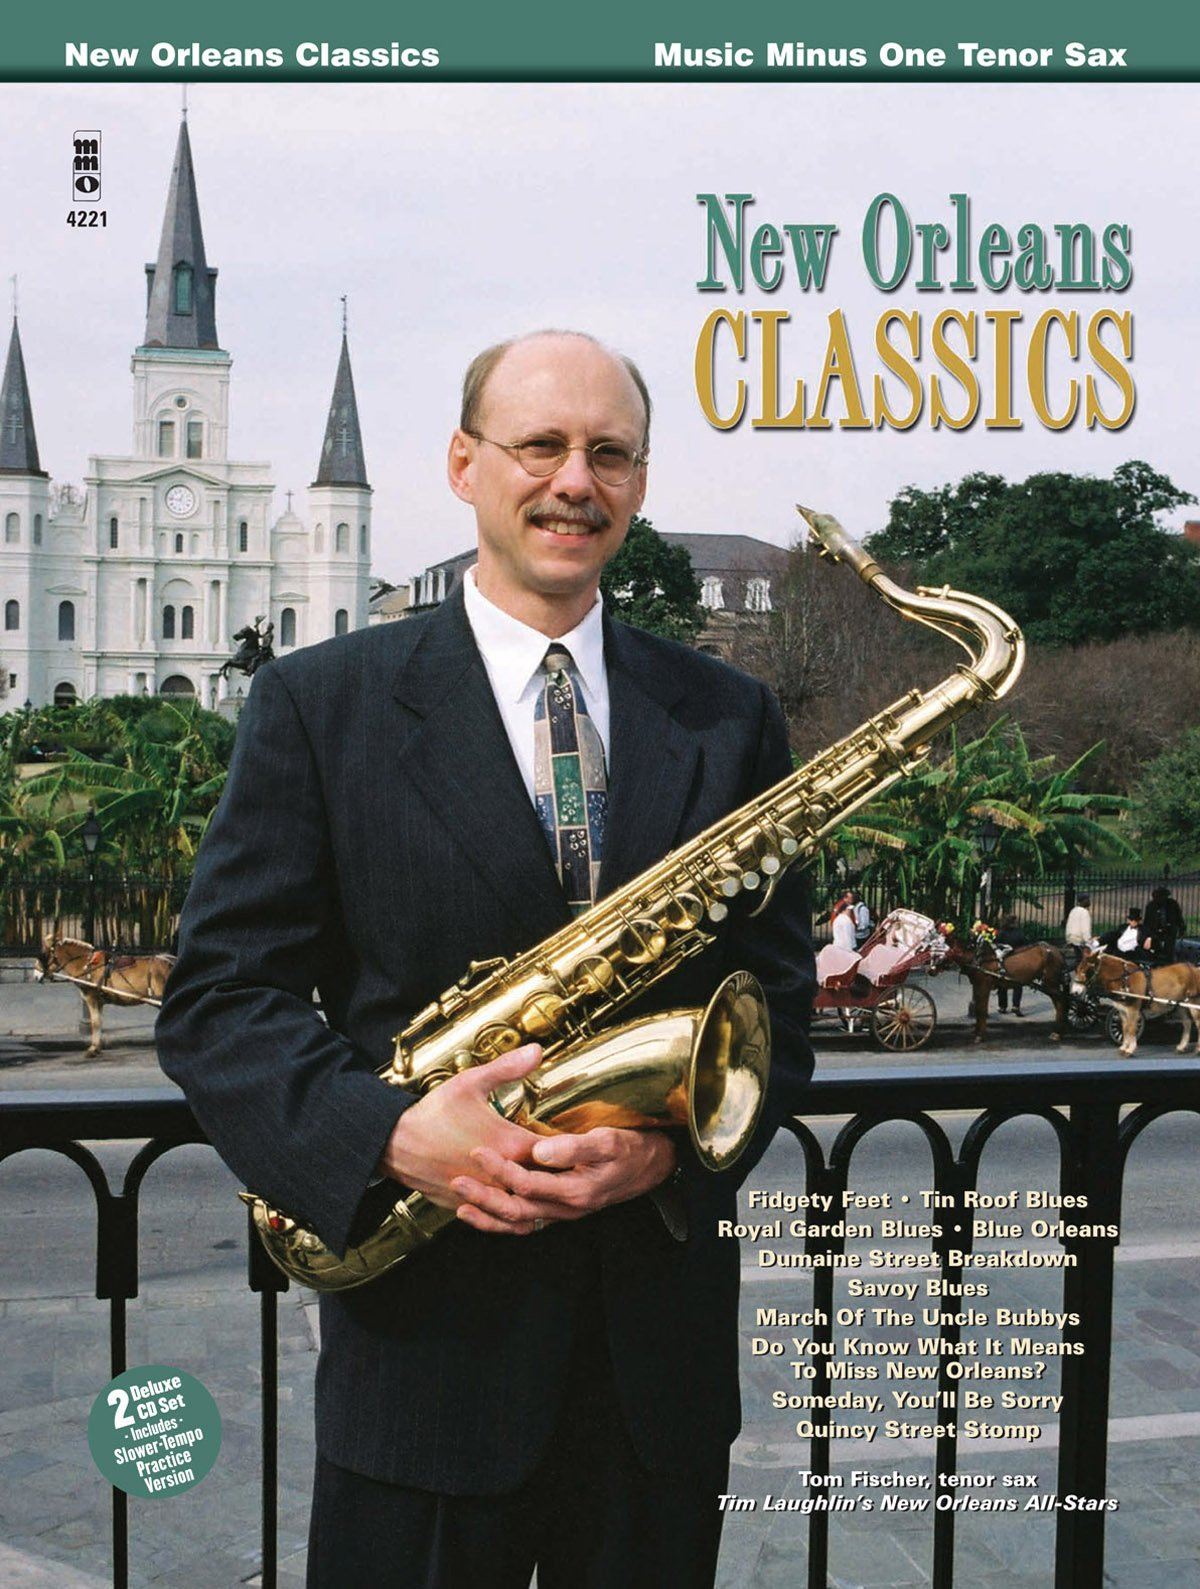 New Orleans Classic by Music Minus One